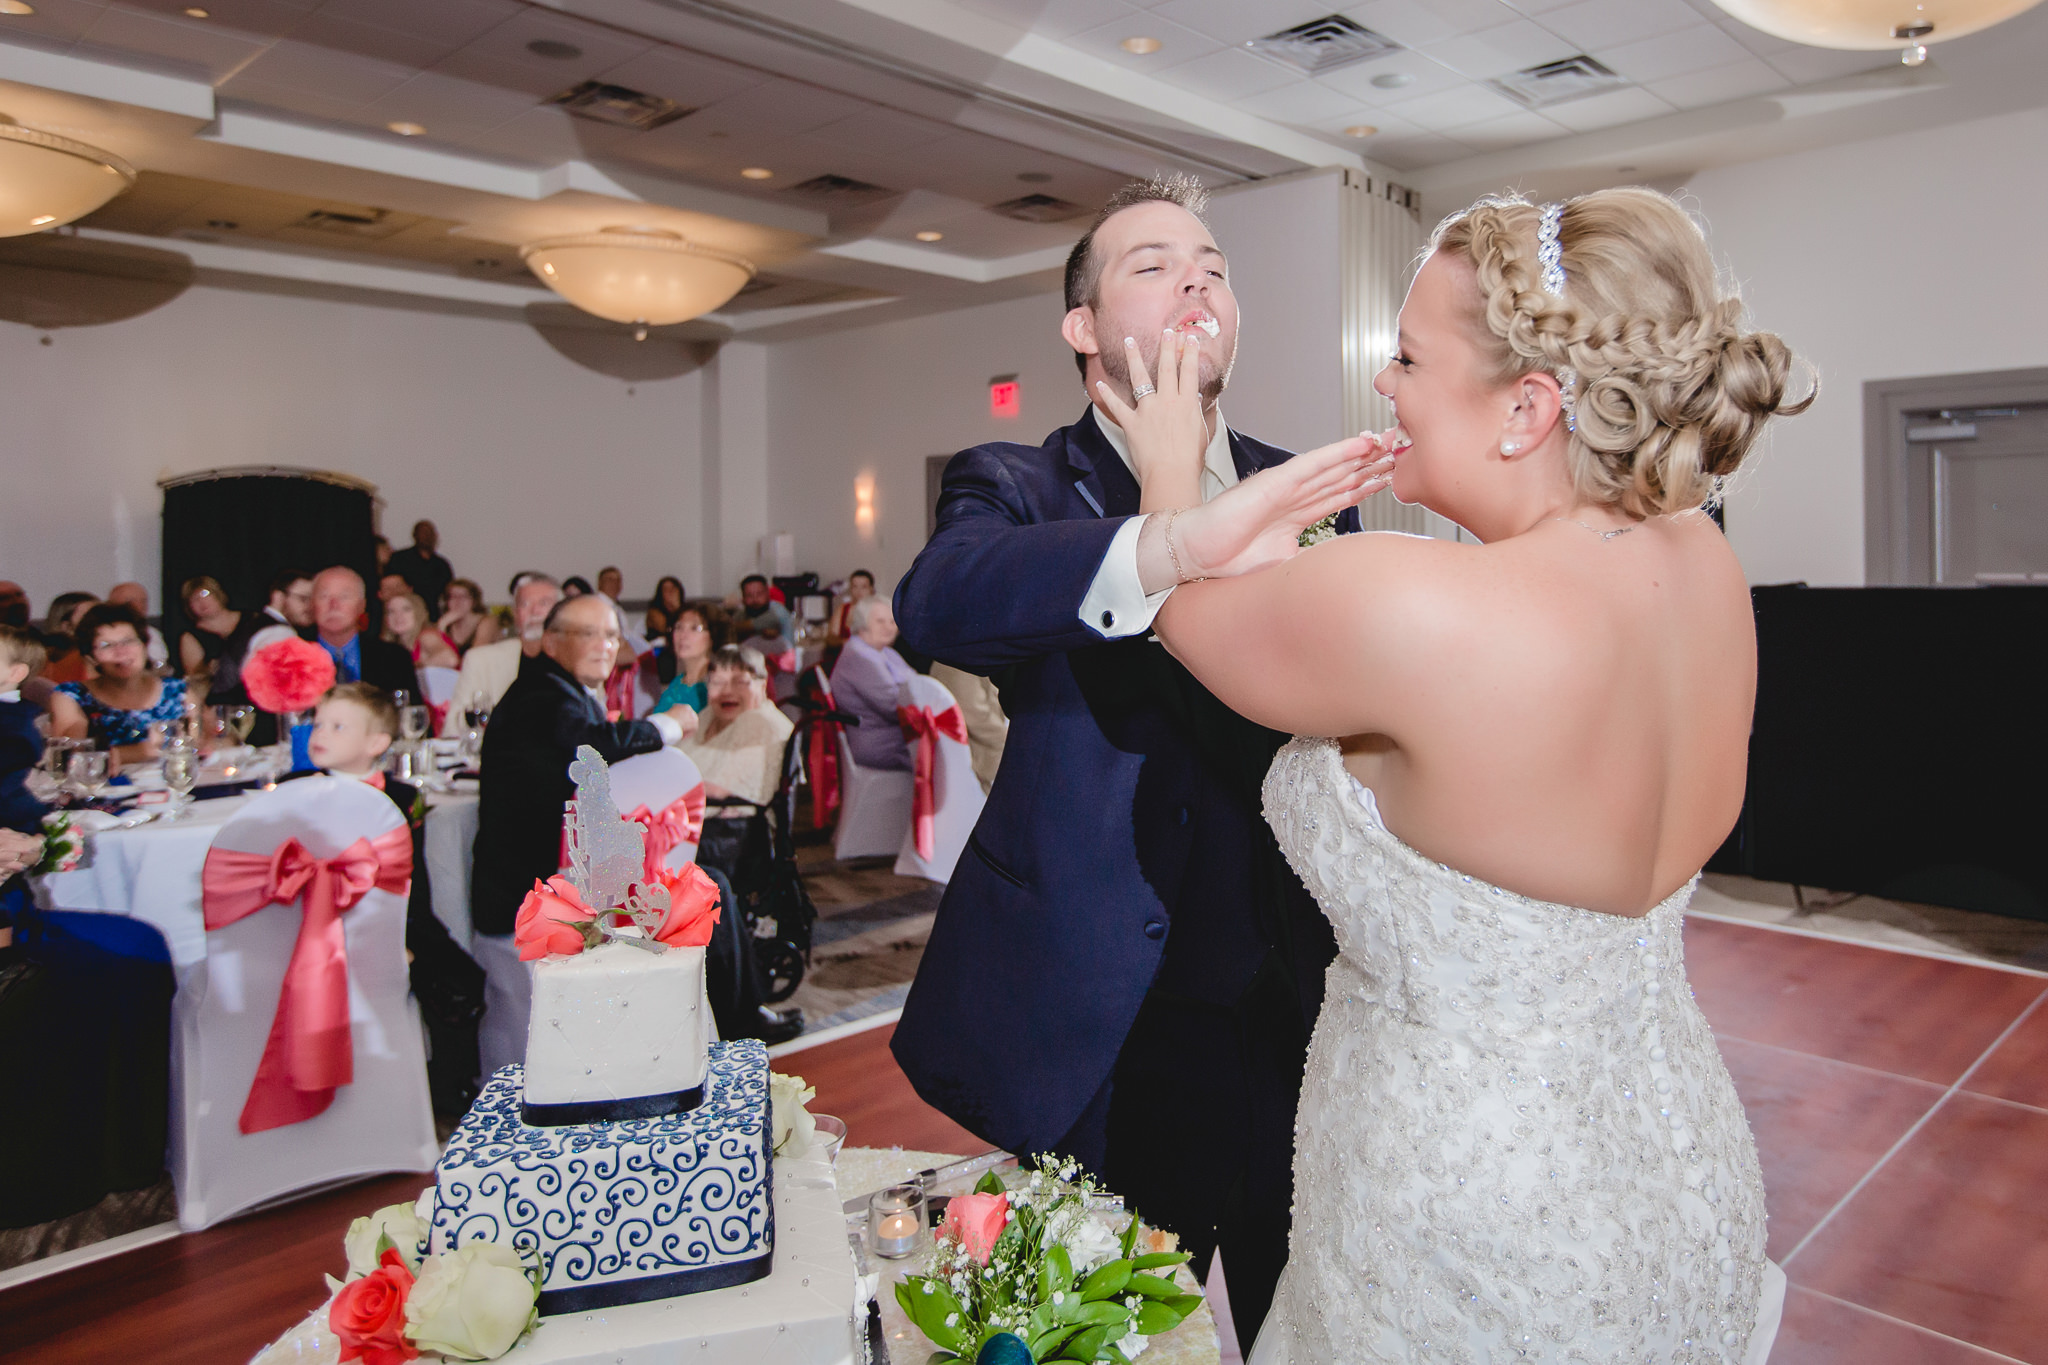 Bride and groom smash cake in each other's faces